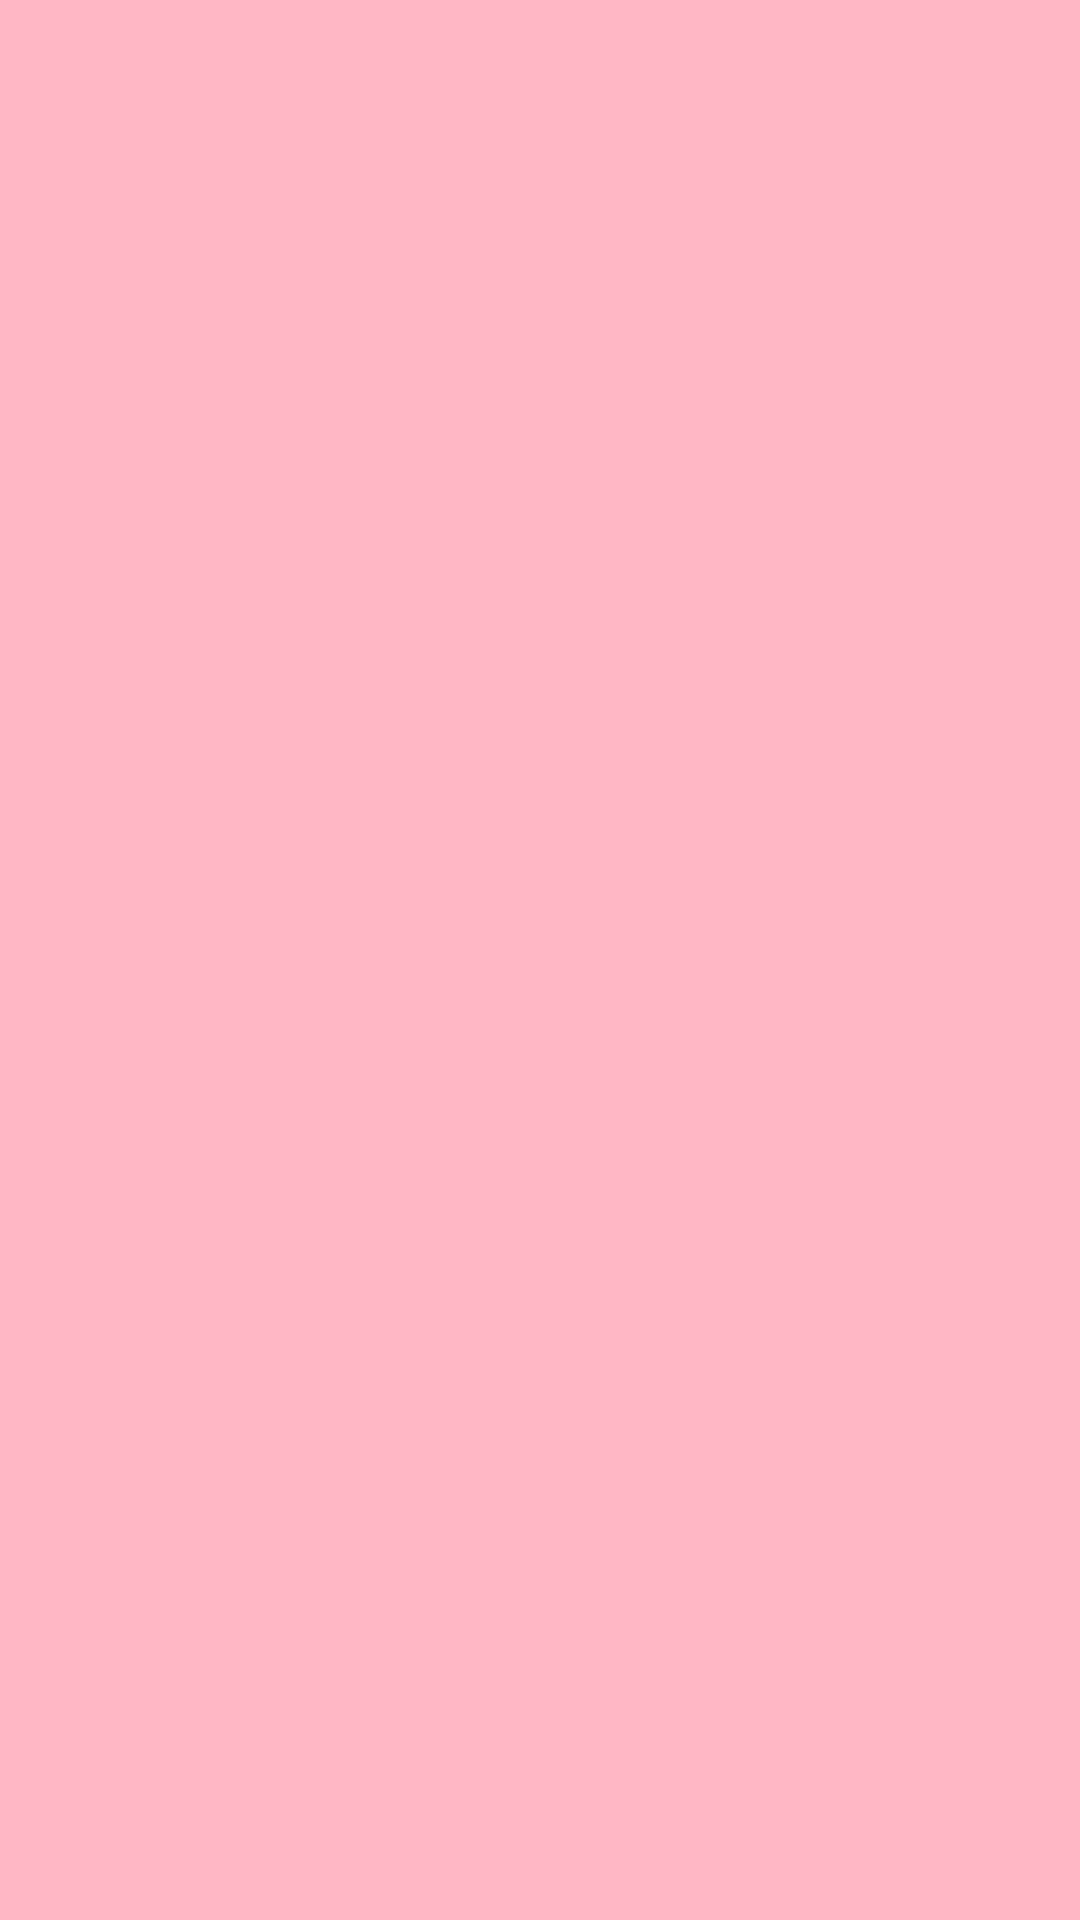 1080x1920 Cherry Blossom Pink Solid Color Background